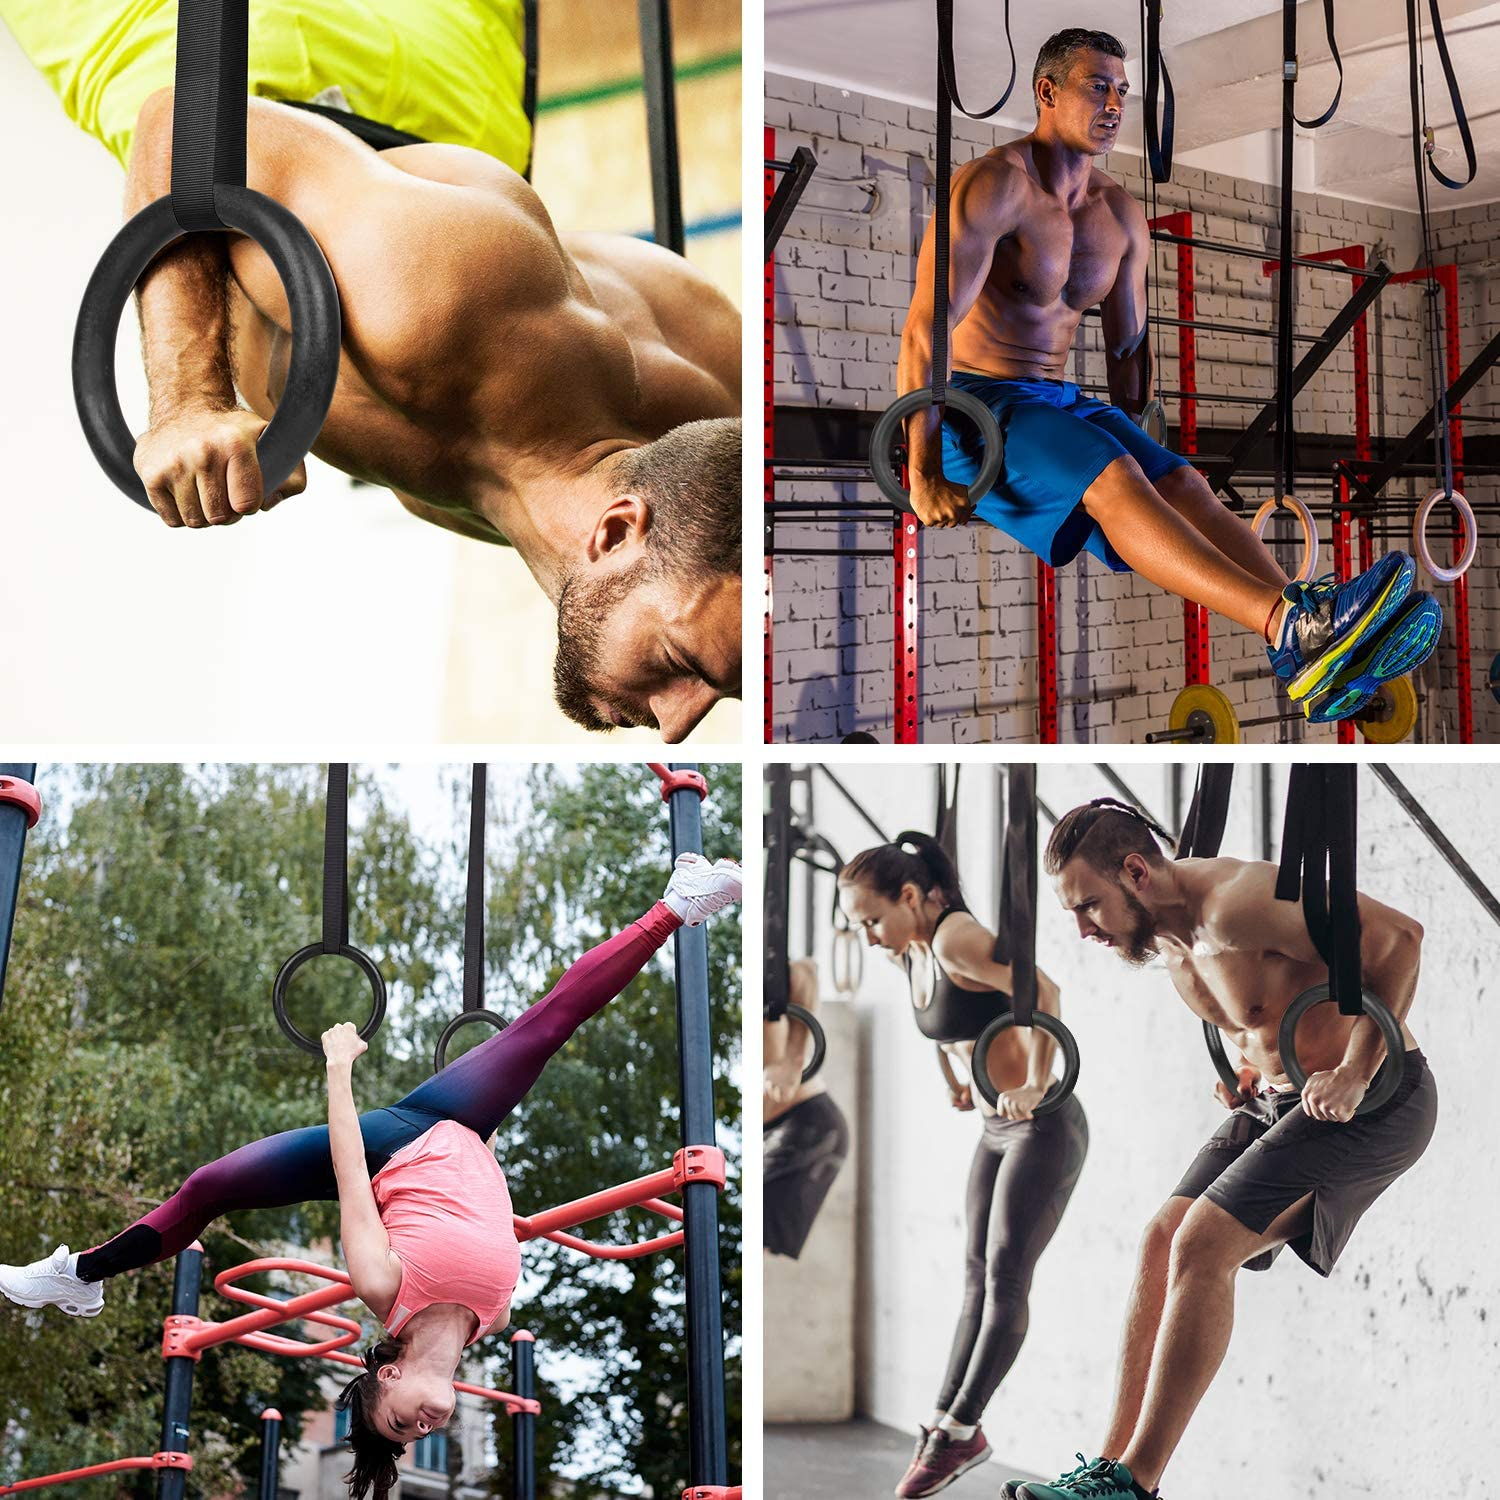 Wood Gymnastic Rings Gym Workout Rings for Full Body Upper Arm Muscle Strength Training Wooden Exercise Rings High Sturdiness with 15 Feet Solid Straps /& Lock Buckles for Pull Ups Muscle Ups Dips